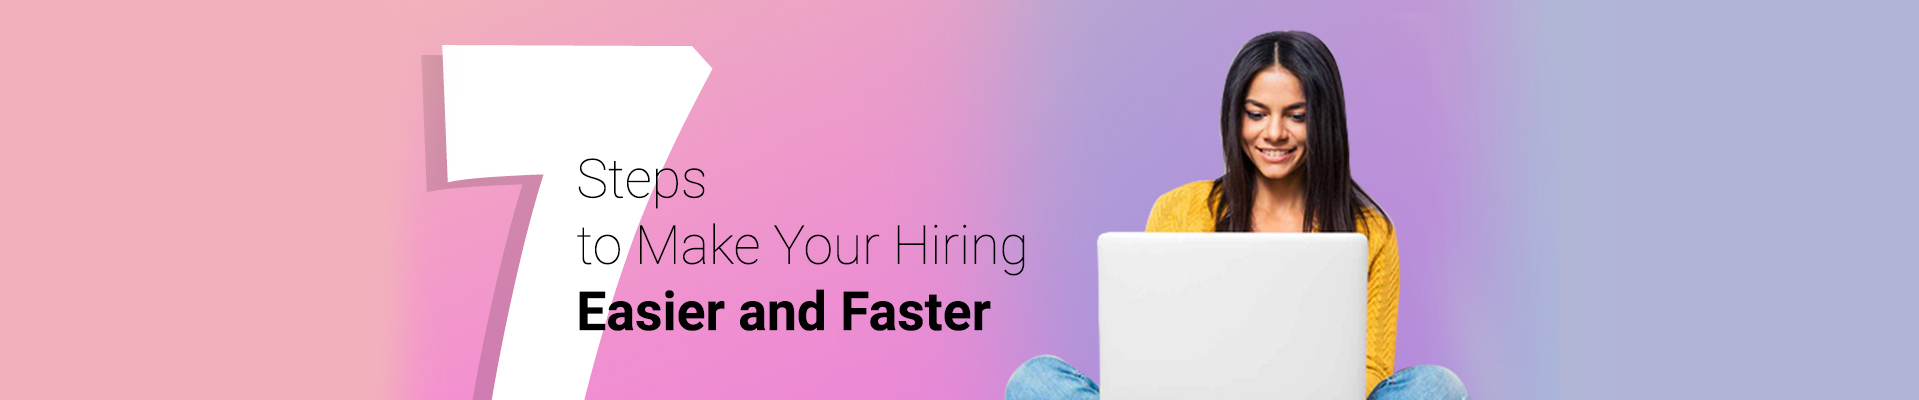 Steps to Make Your Hiring